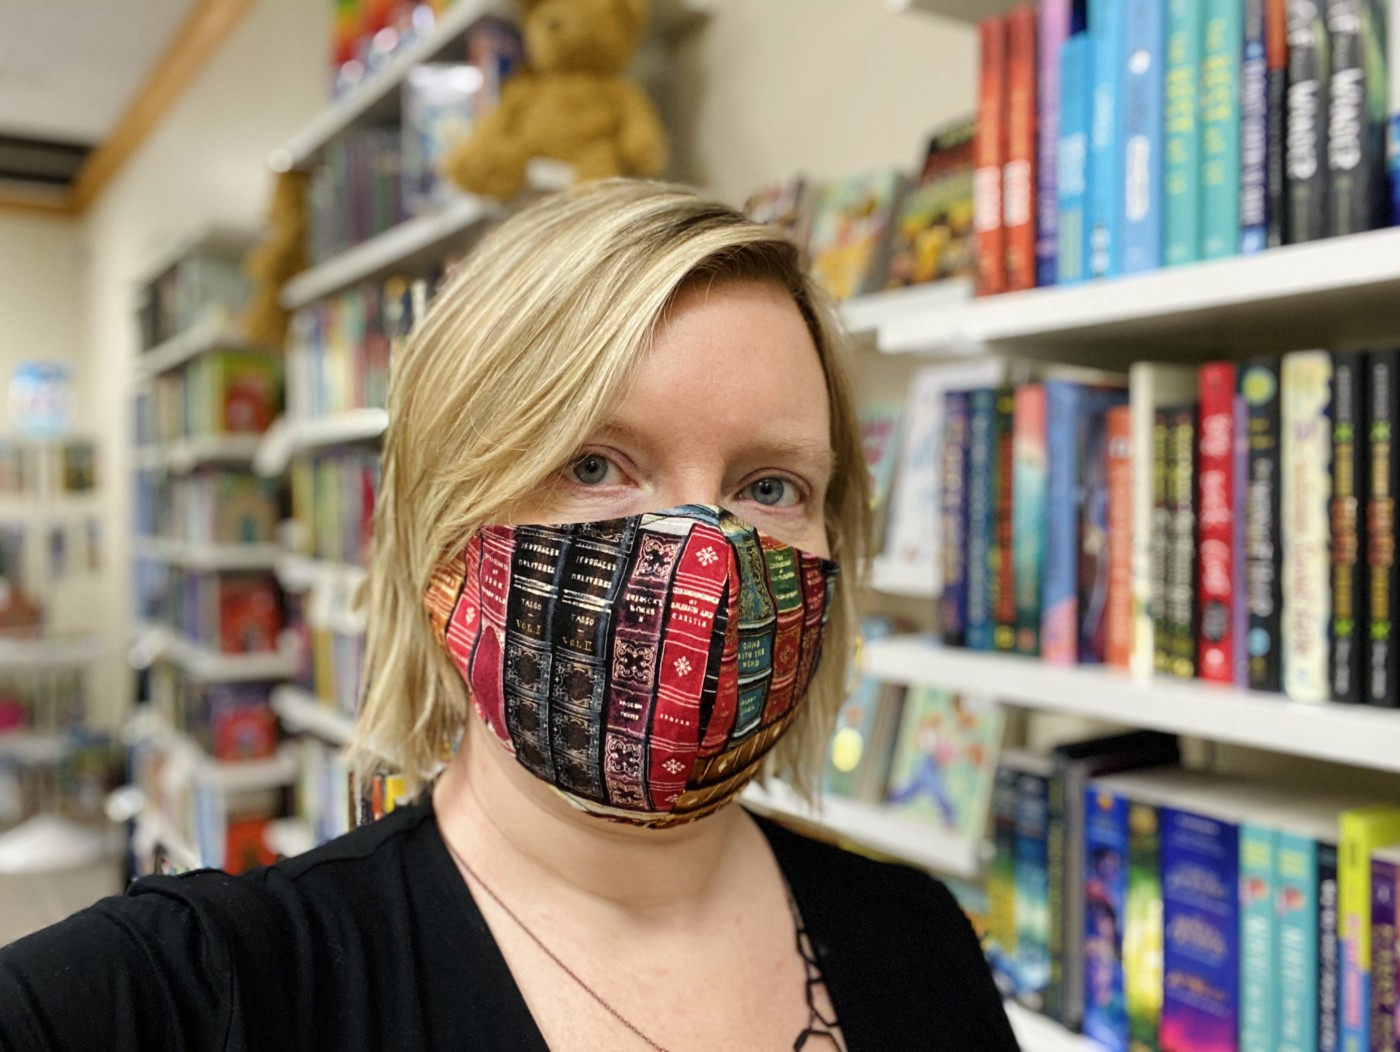 A photo of the author wearing a face mask.